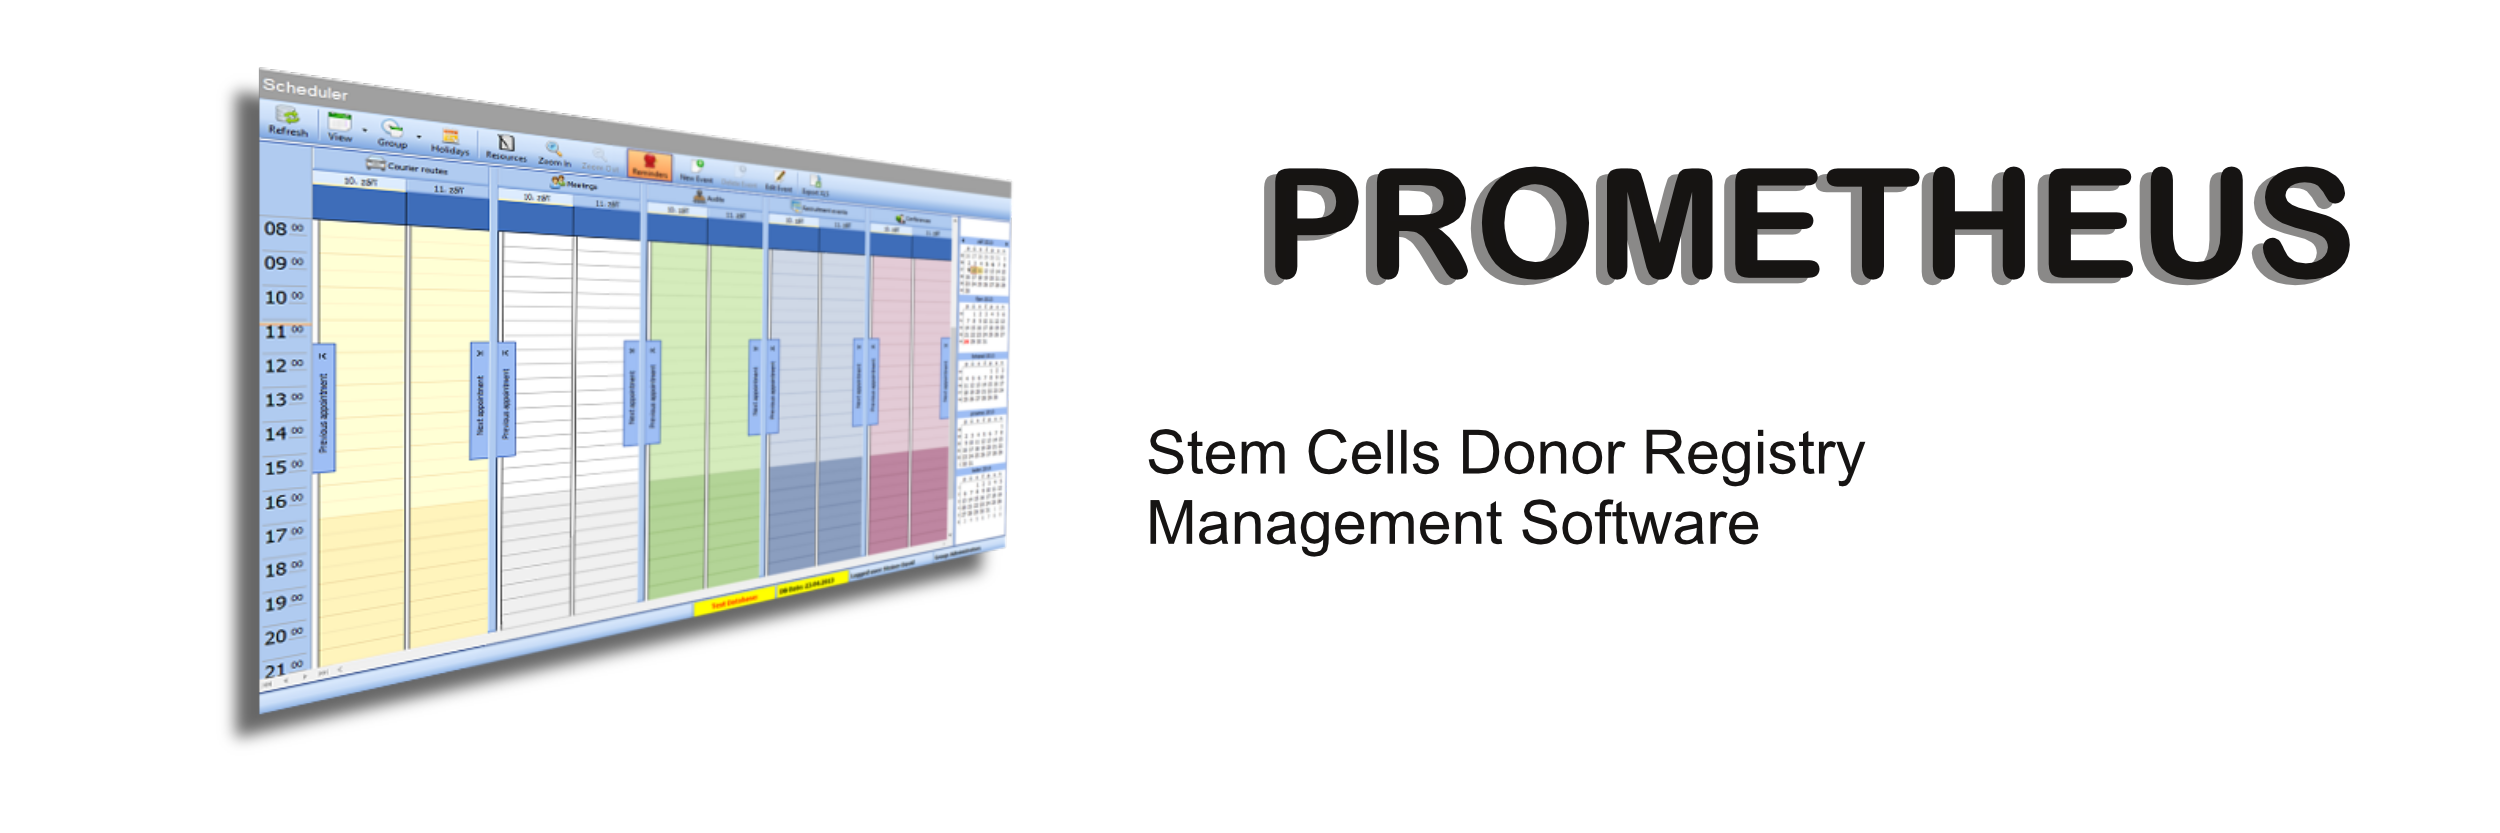 PROMETHEUS - BMD Registry Management Software